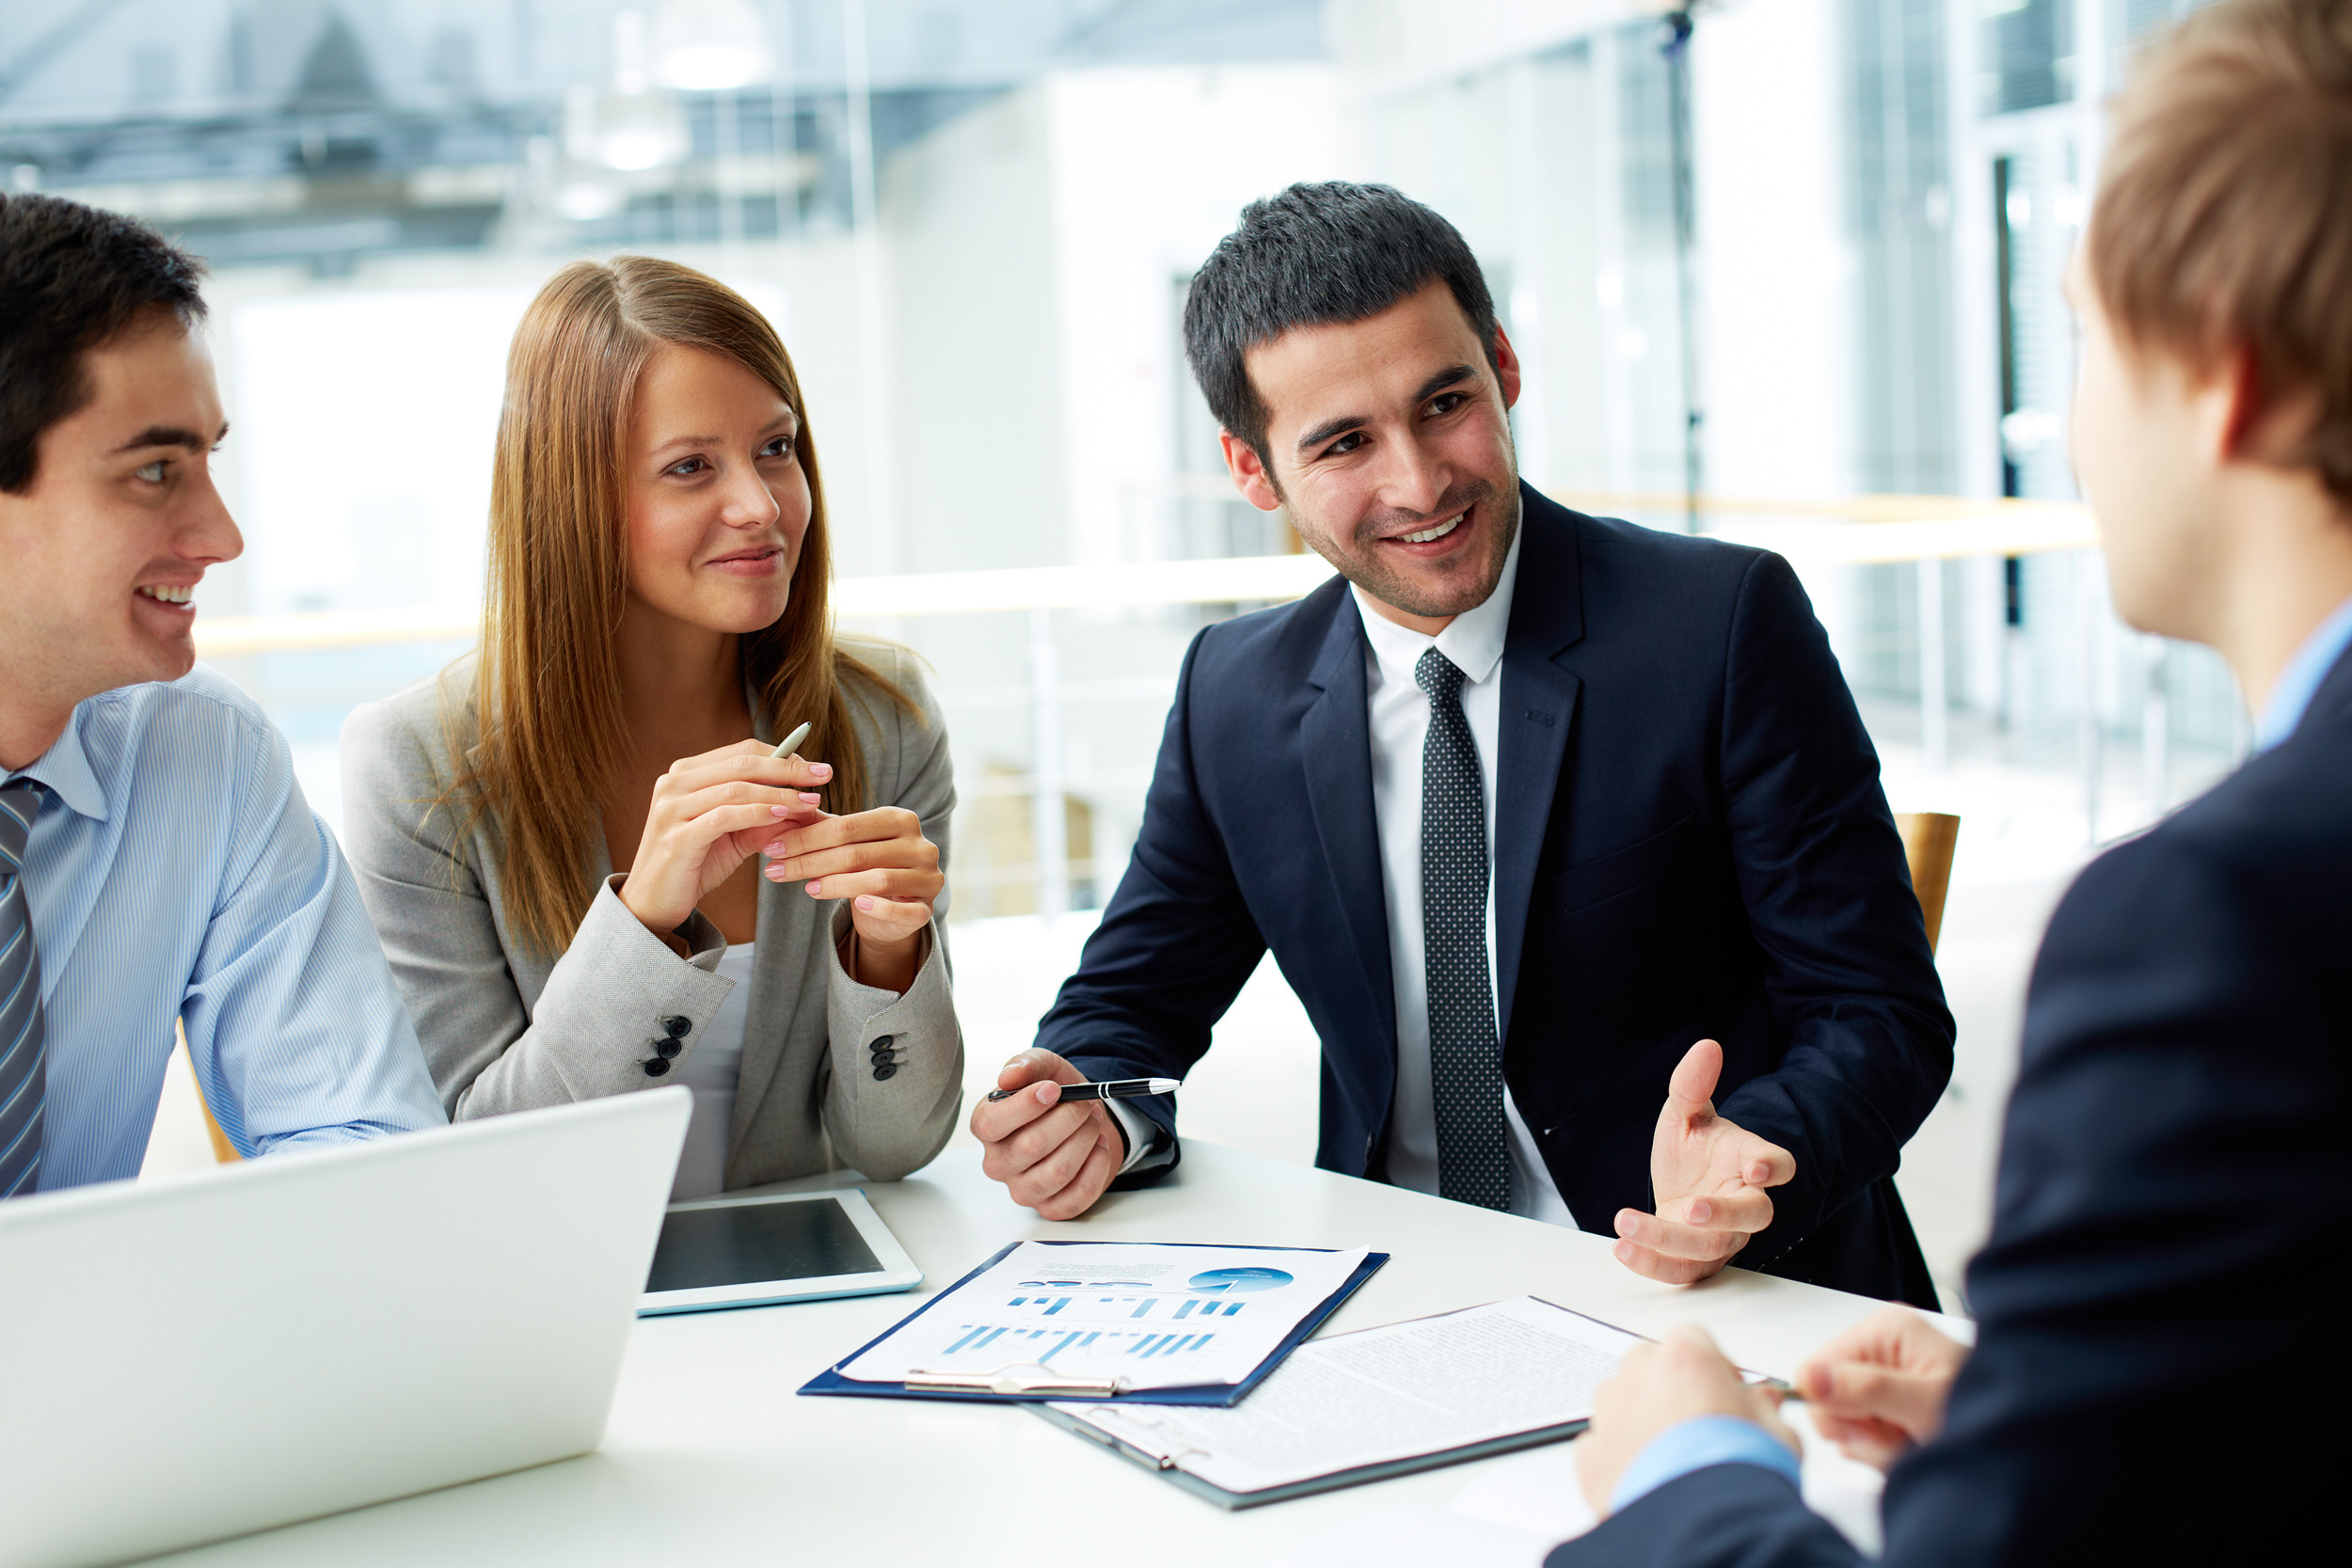 Center for Performance Improvement - Seven Secrets of a Great Sales Meeting